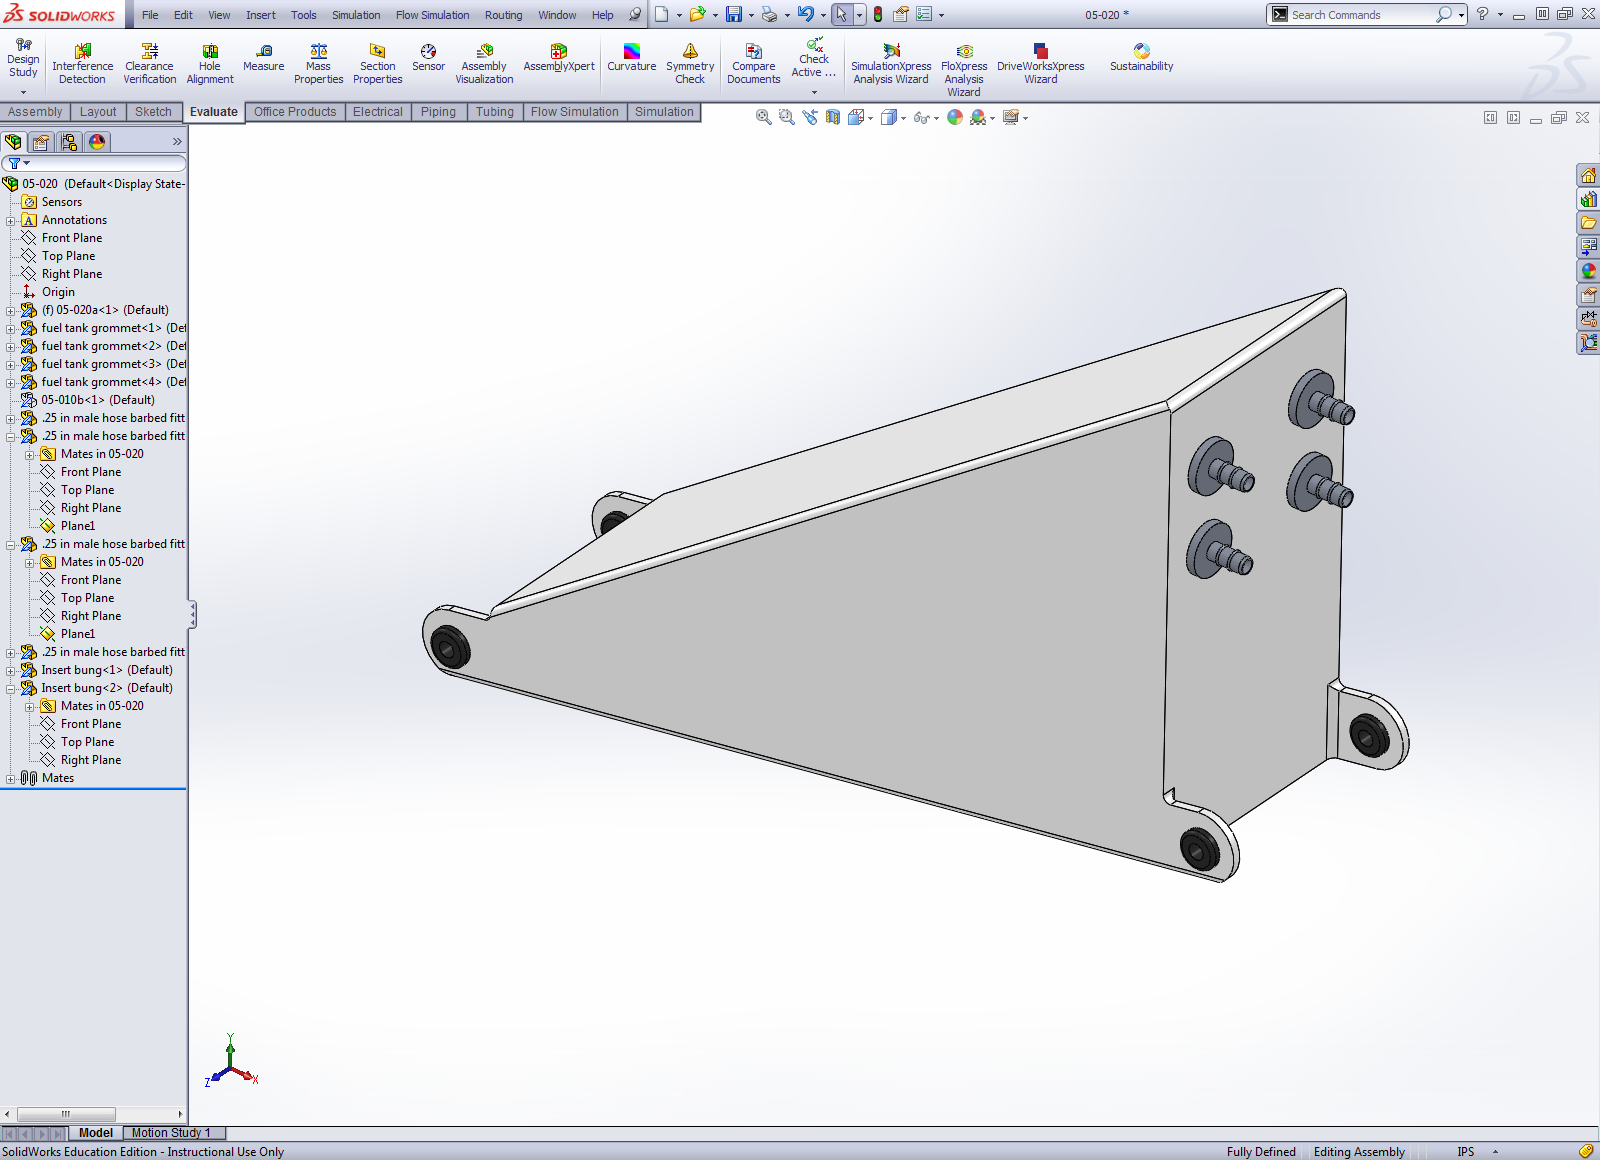 Media Iowa State Sae International Piping Diagram Solidworks Overflows